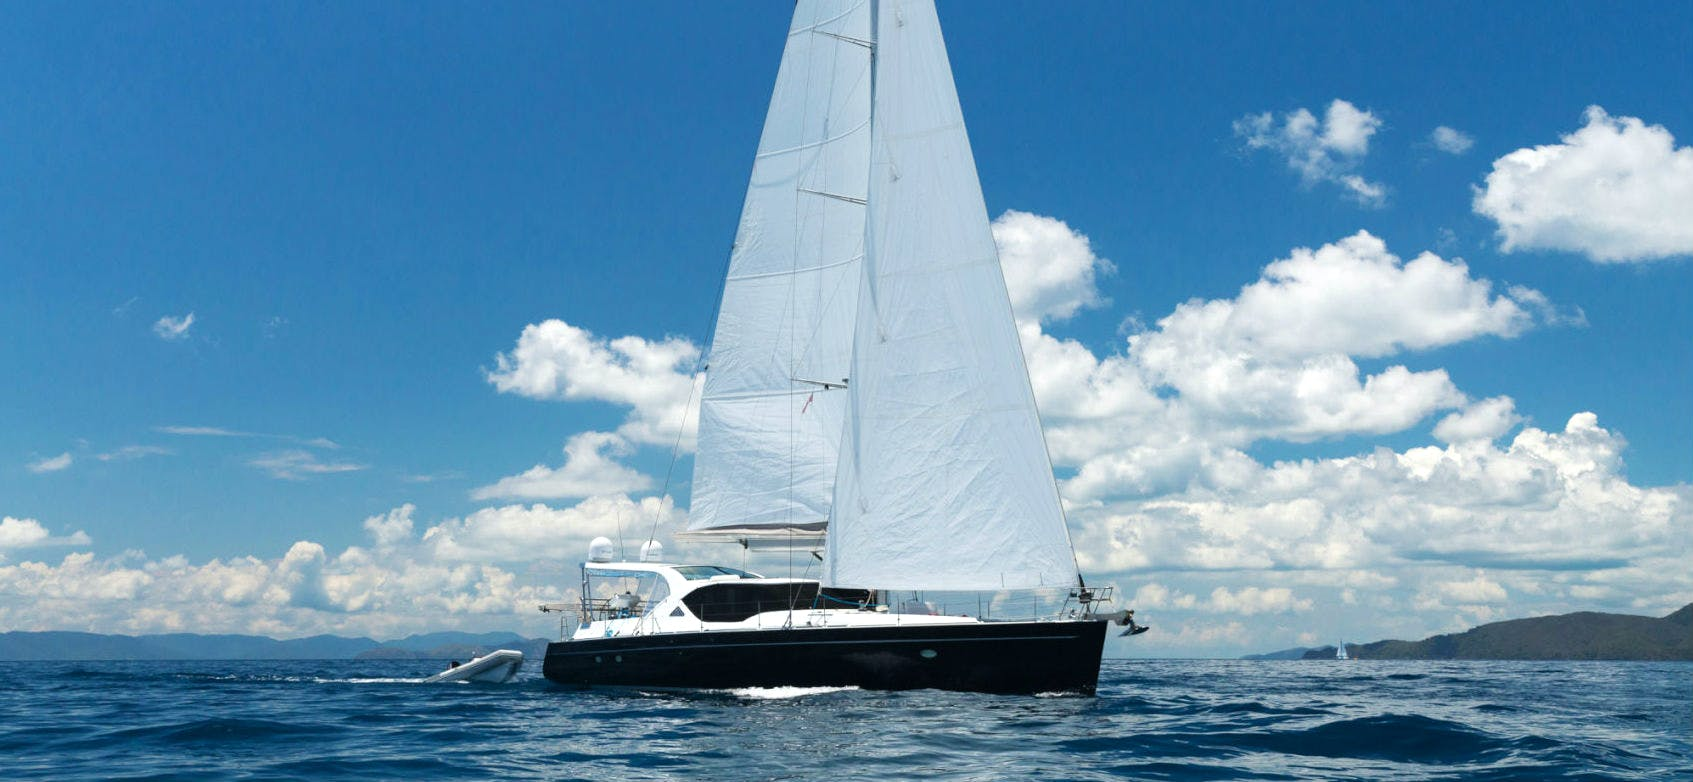 Seasonal Rates for BLISS Private Luxury Yacht For Charter